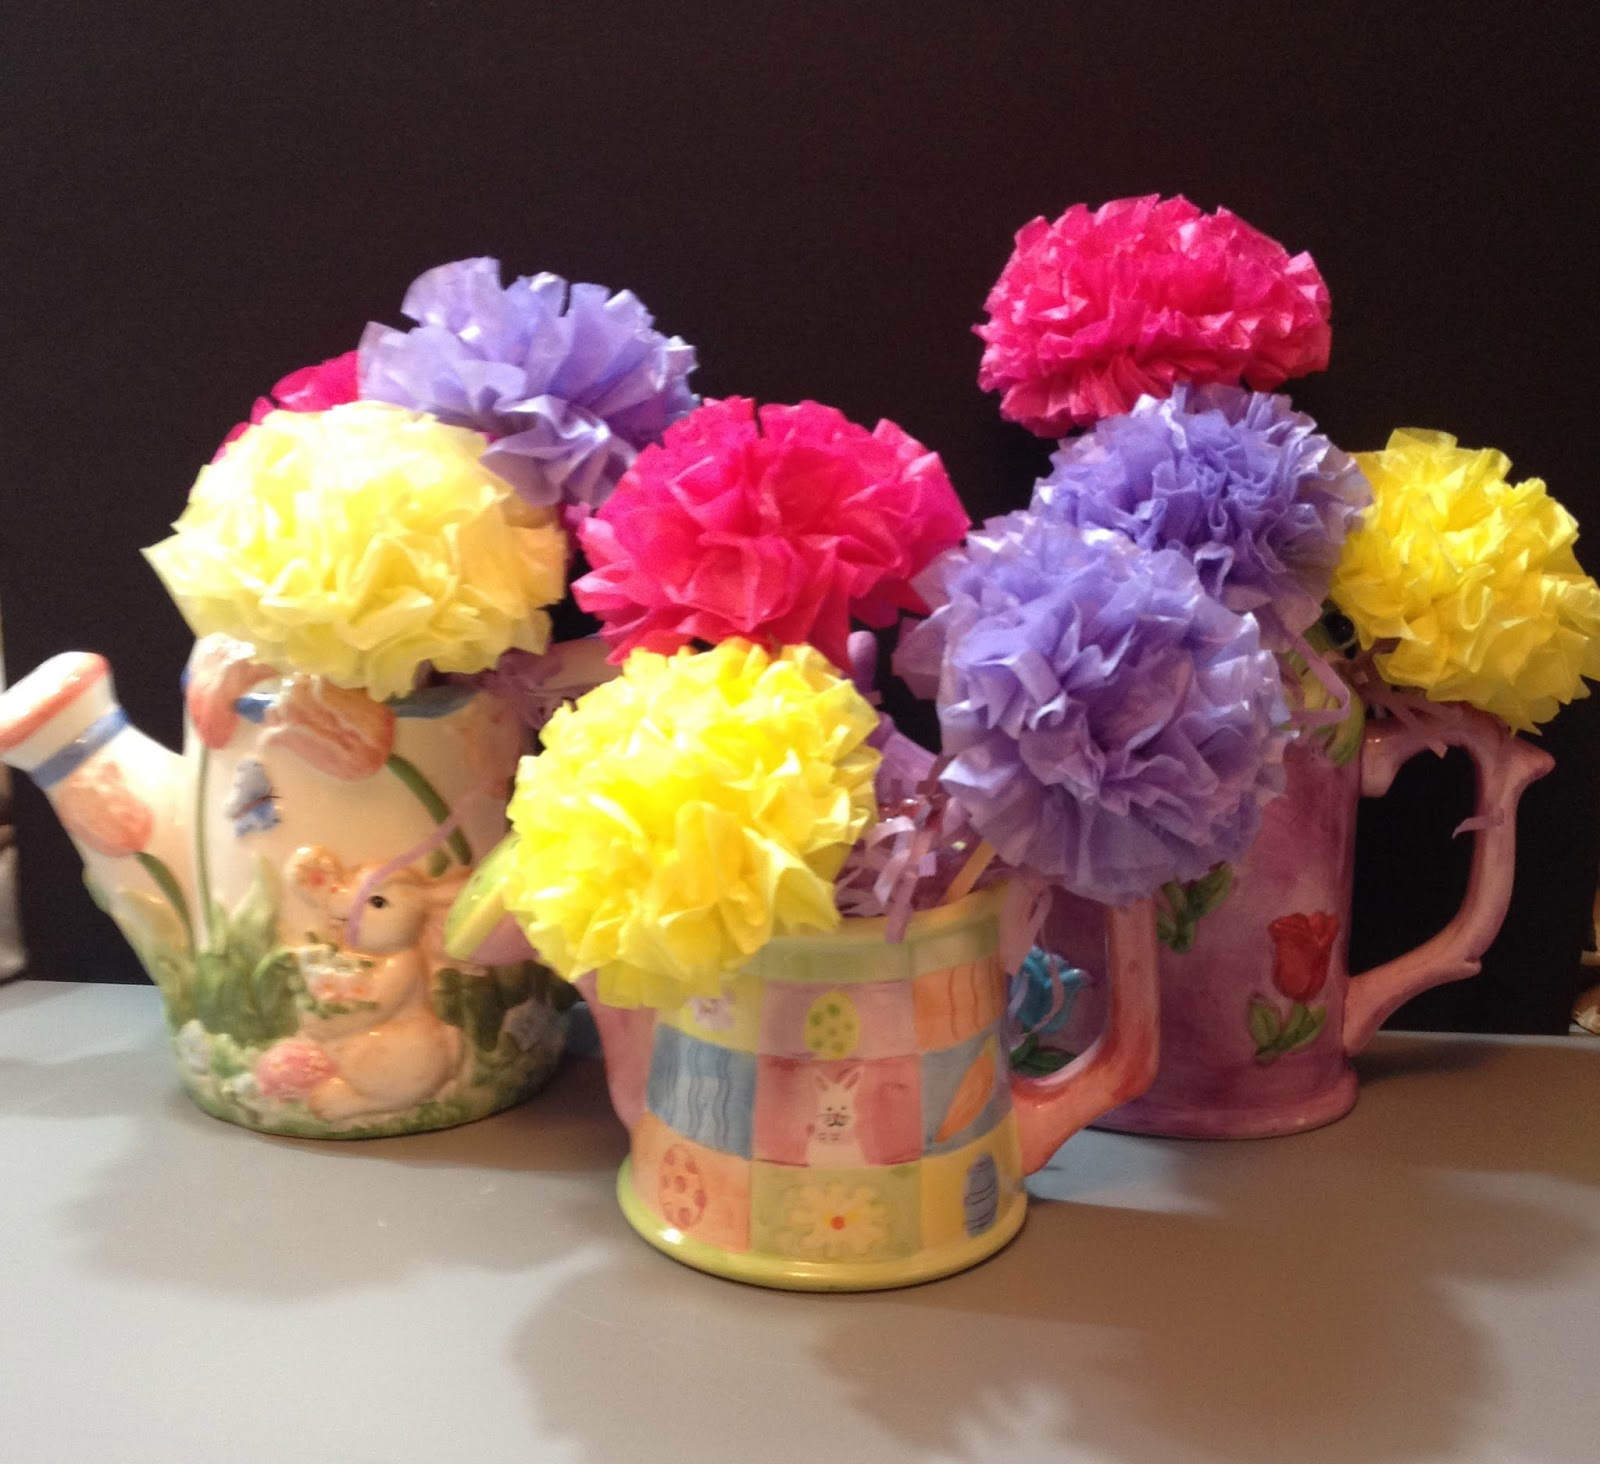 But We Couldnt Find Any Really Cute Teapots So My Second Choice Was Watering Cans In Spring Like Colours